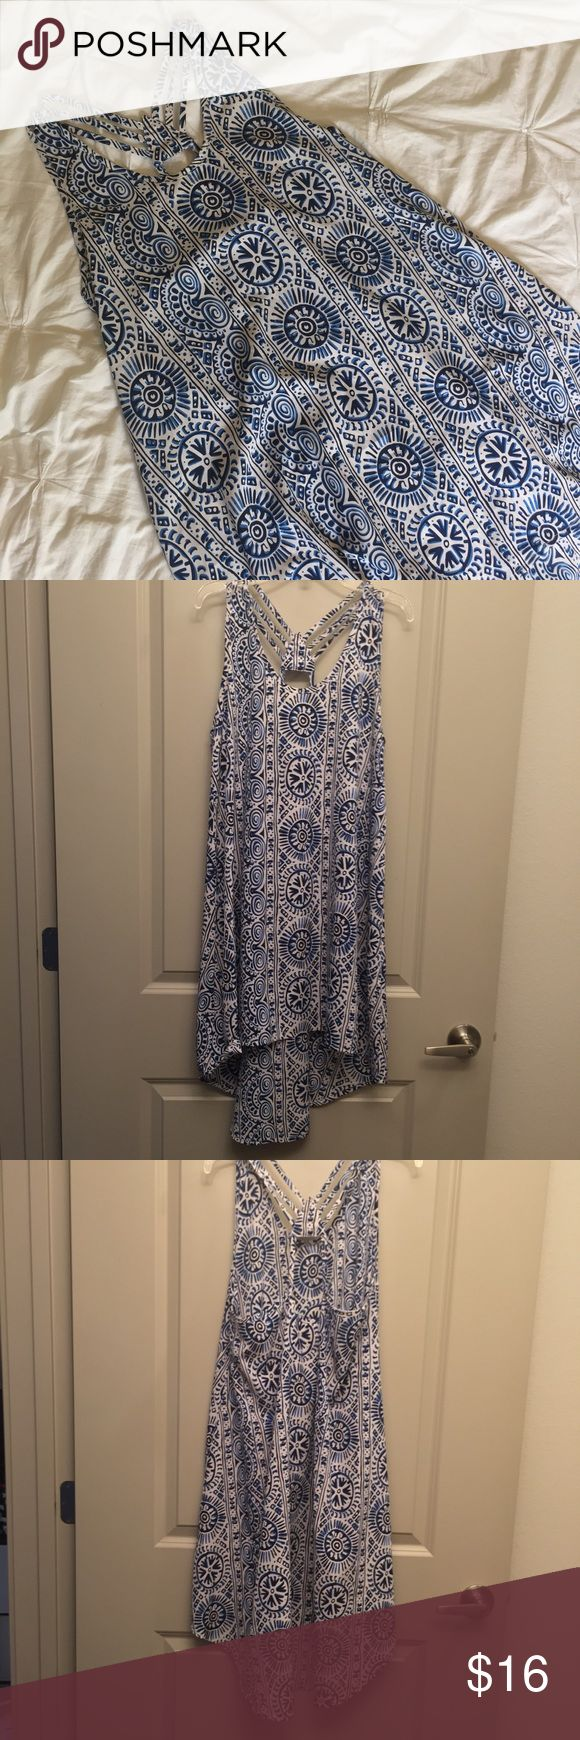 Beachy Patterned Dress Listing includes one dress from Mint Julep Boutique. Open to reasonable offers. Mint Julep Boutique Dresses Midi